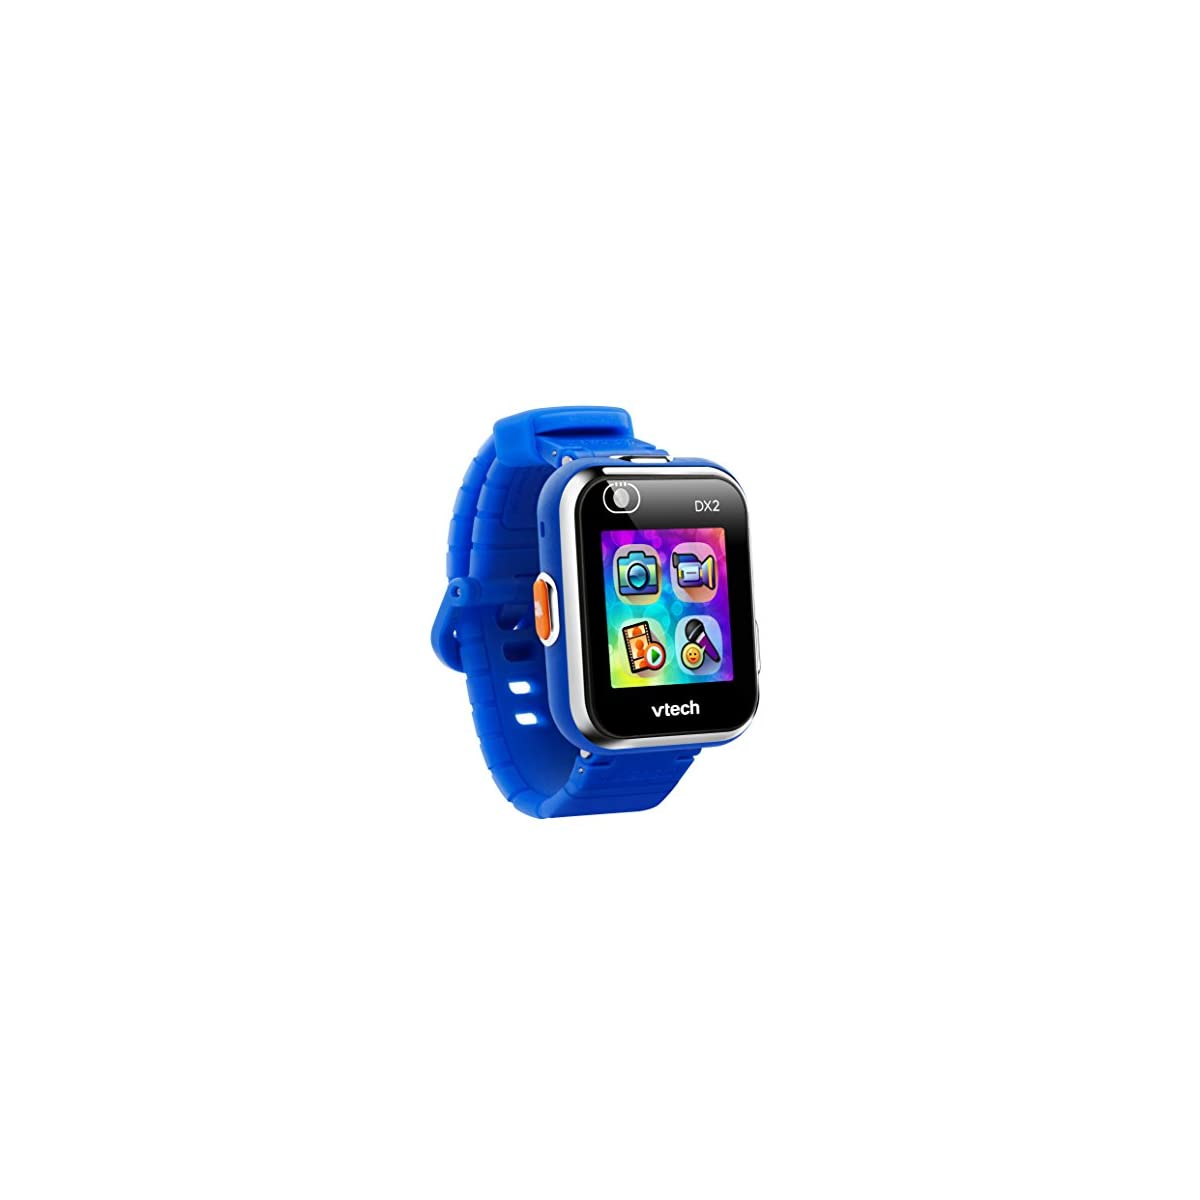 413J1 6R%2BkL. SS1200  - VTech Kidizoom DX2 - Electrónica para niños (Kids smartwatch, Blue, Splash proof, Buttons, 5 yr(s), Boy/Girl) [version aleman]